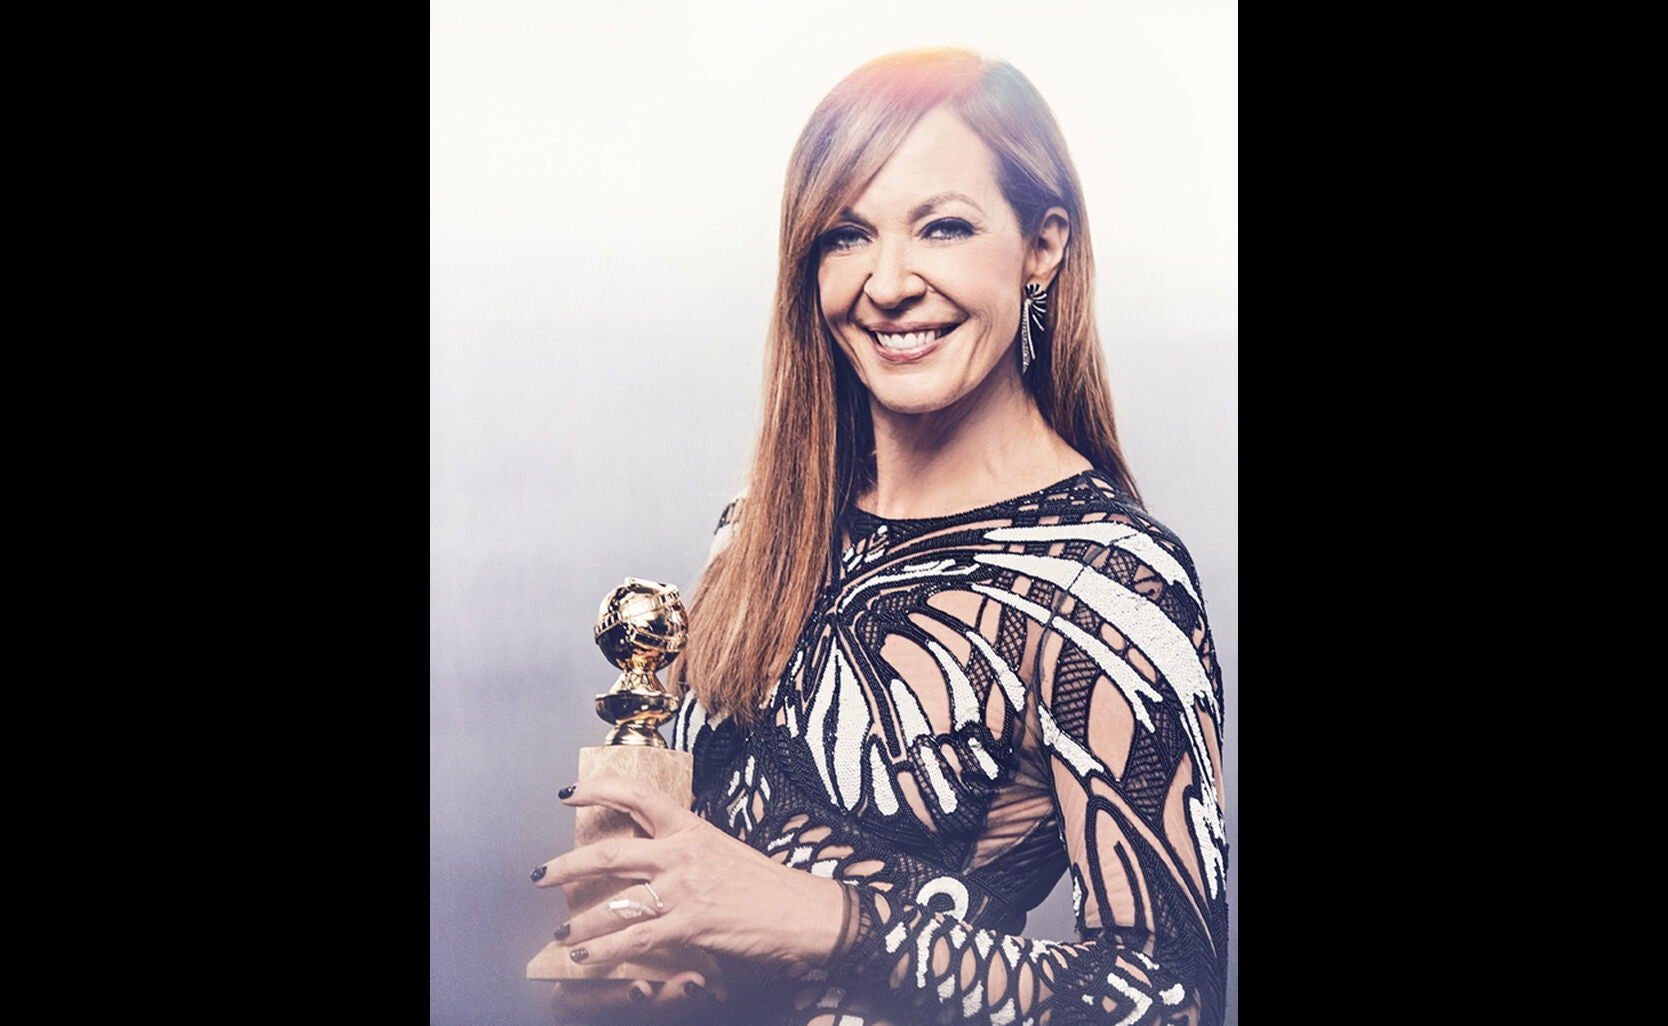 Allison Janney, Best Performance by an Actress in a Motion Picture, I, Tonya